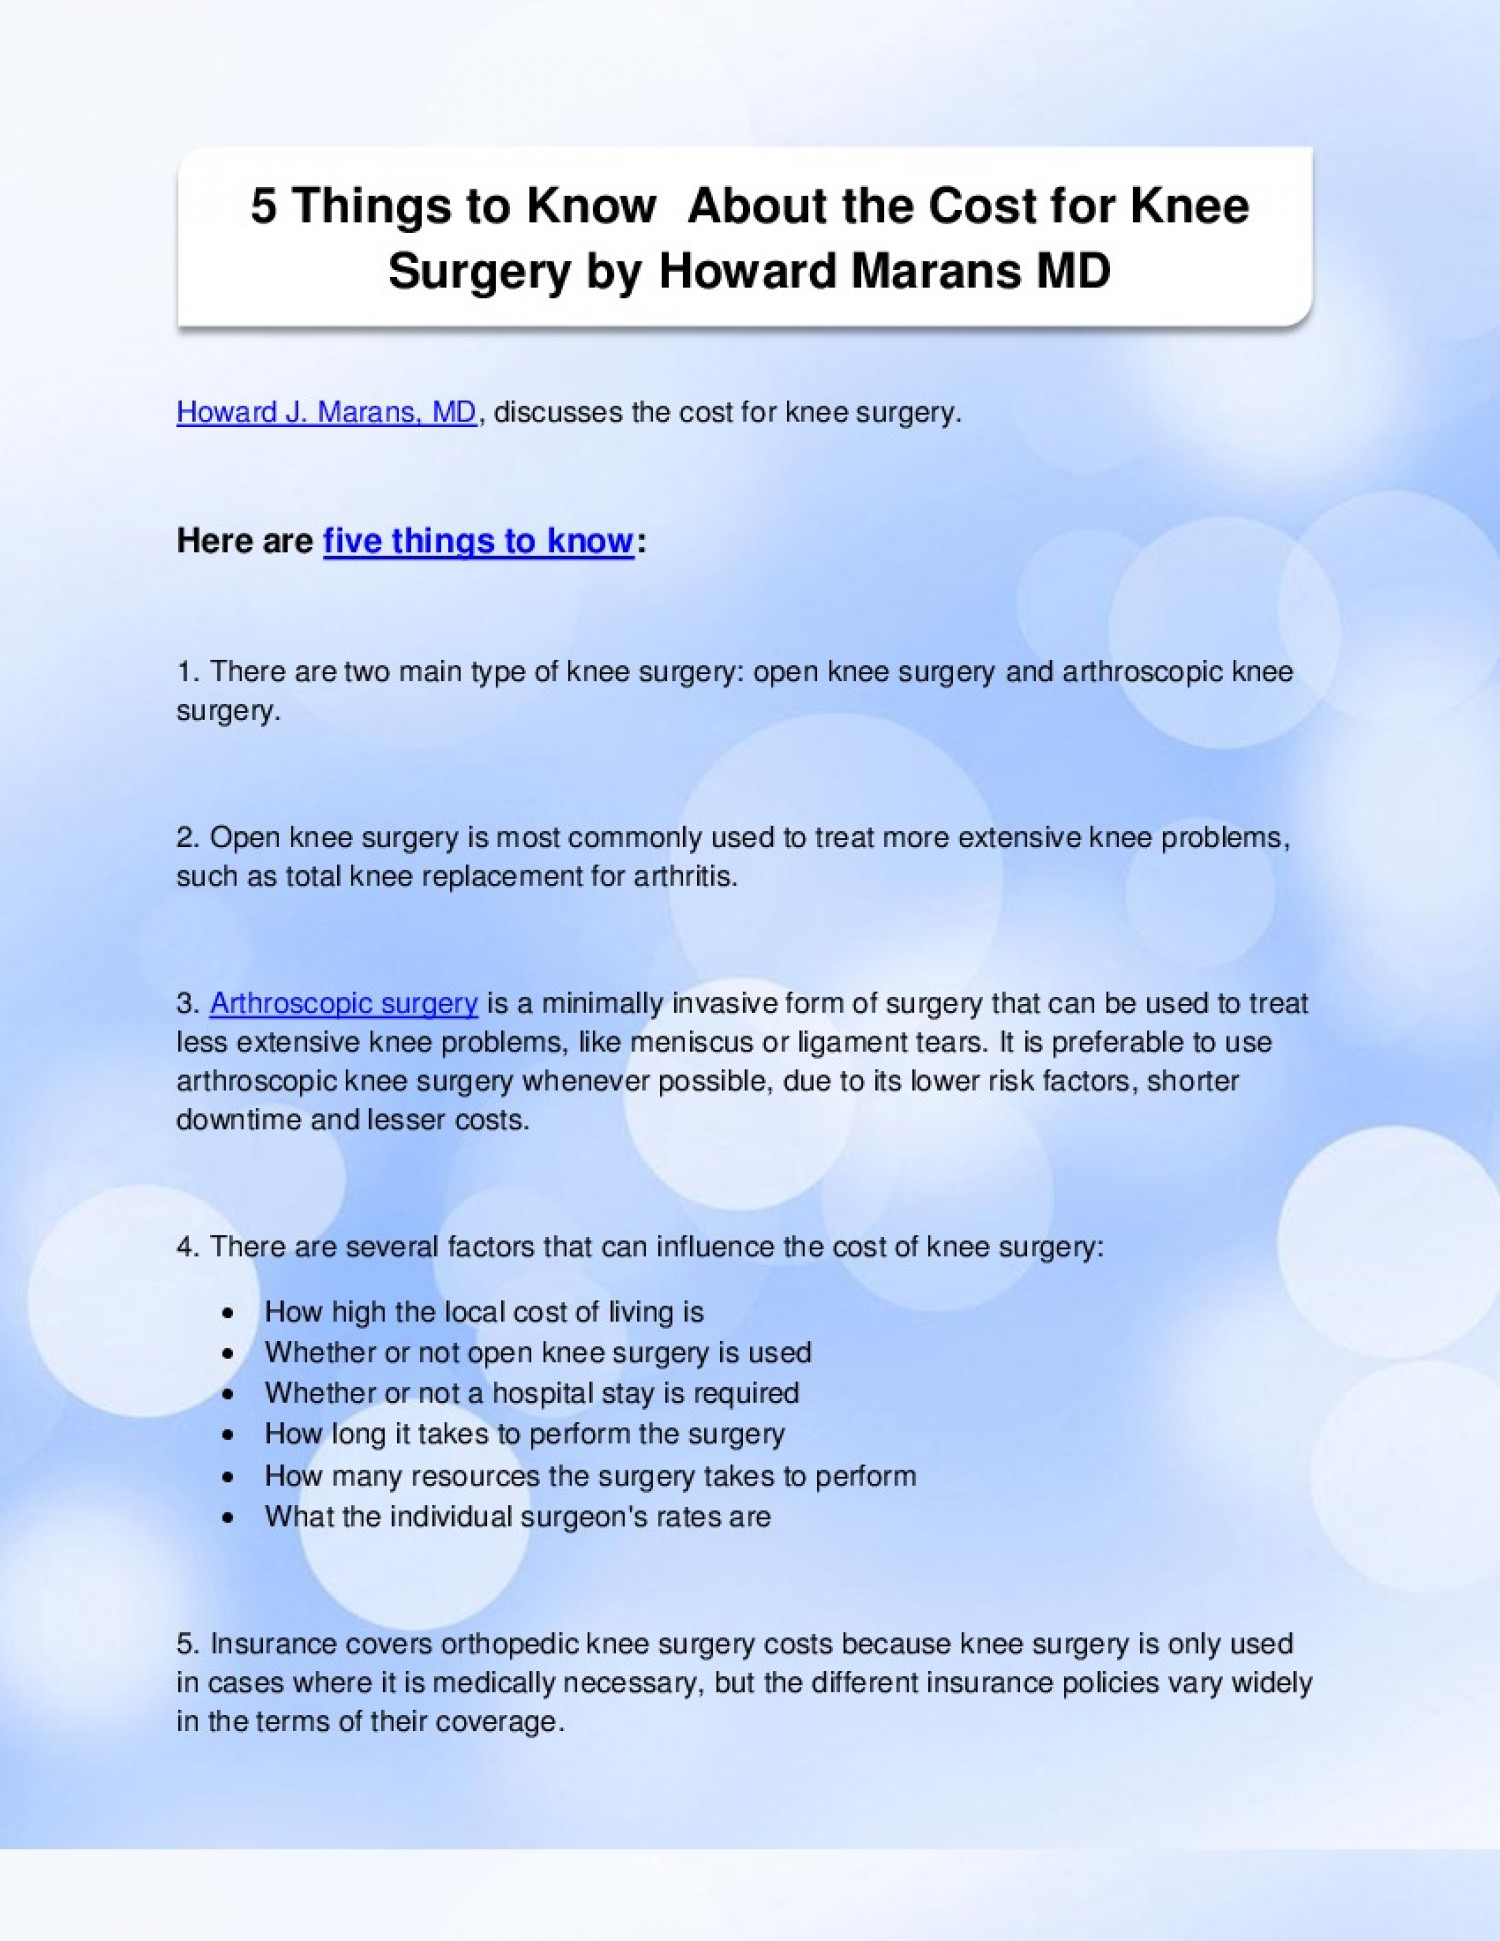 5 Things to Know About the Cost for Knee Surgery by Howard Marans MD Infographic